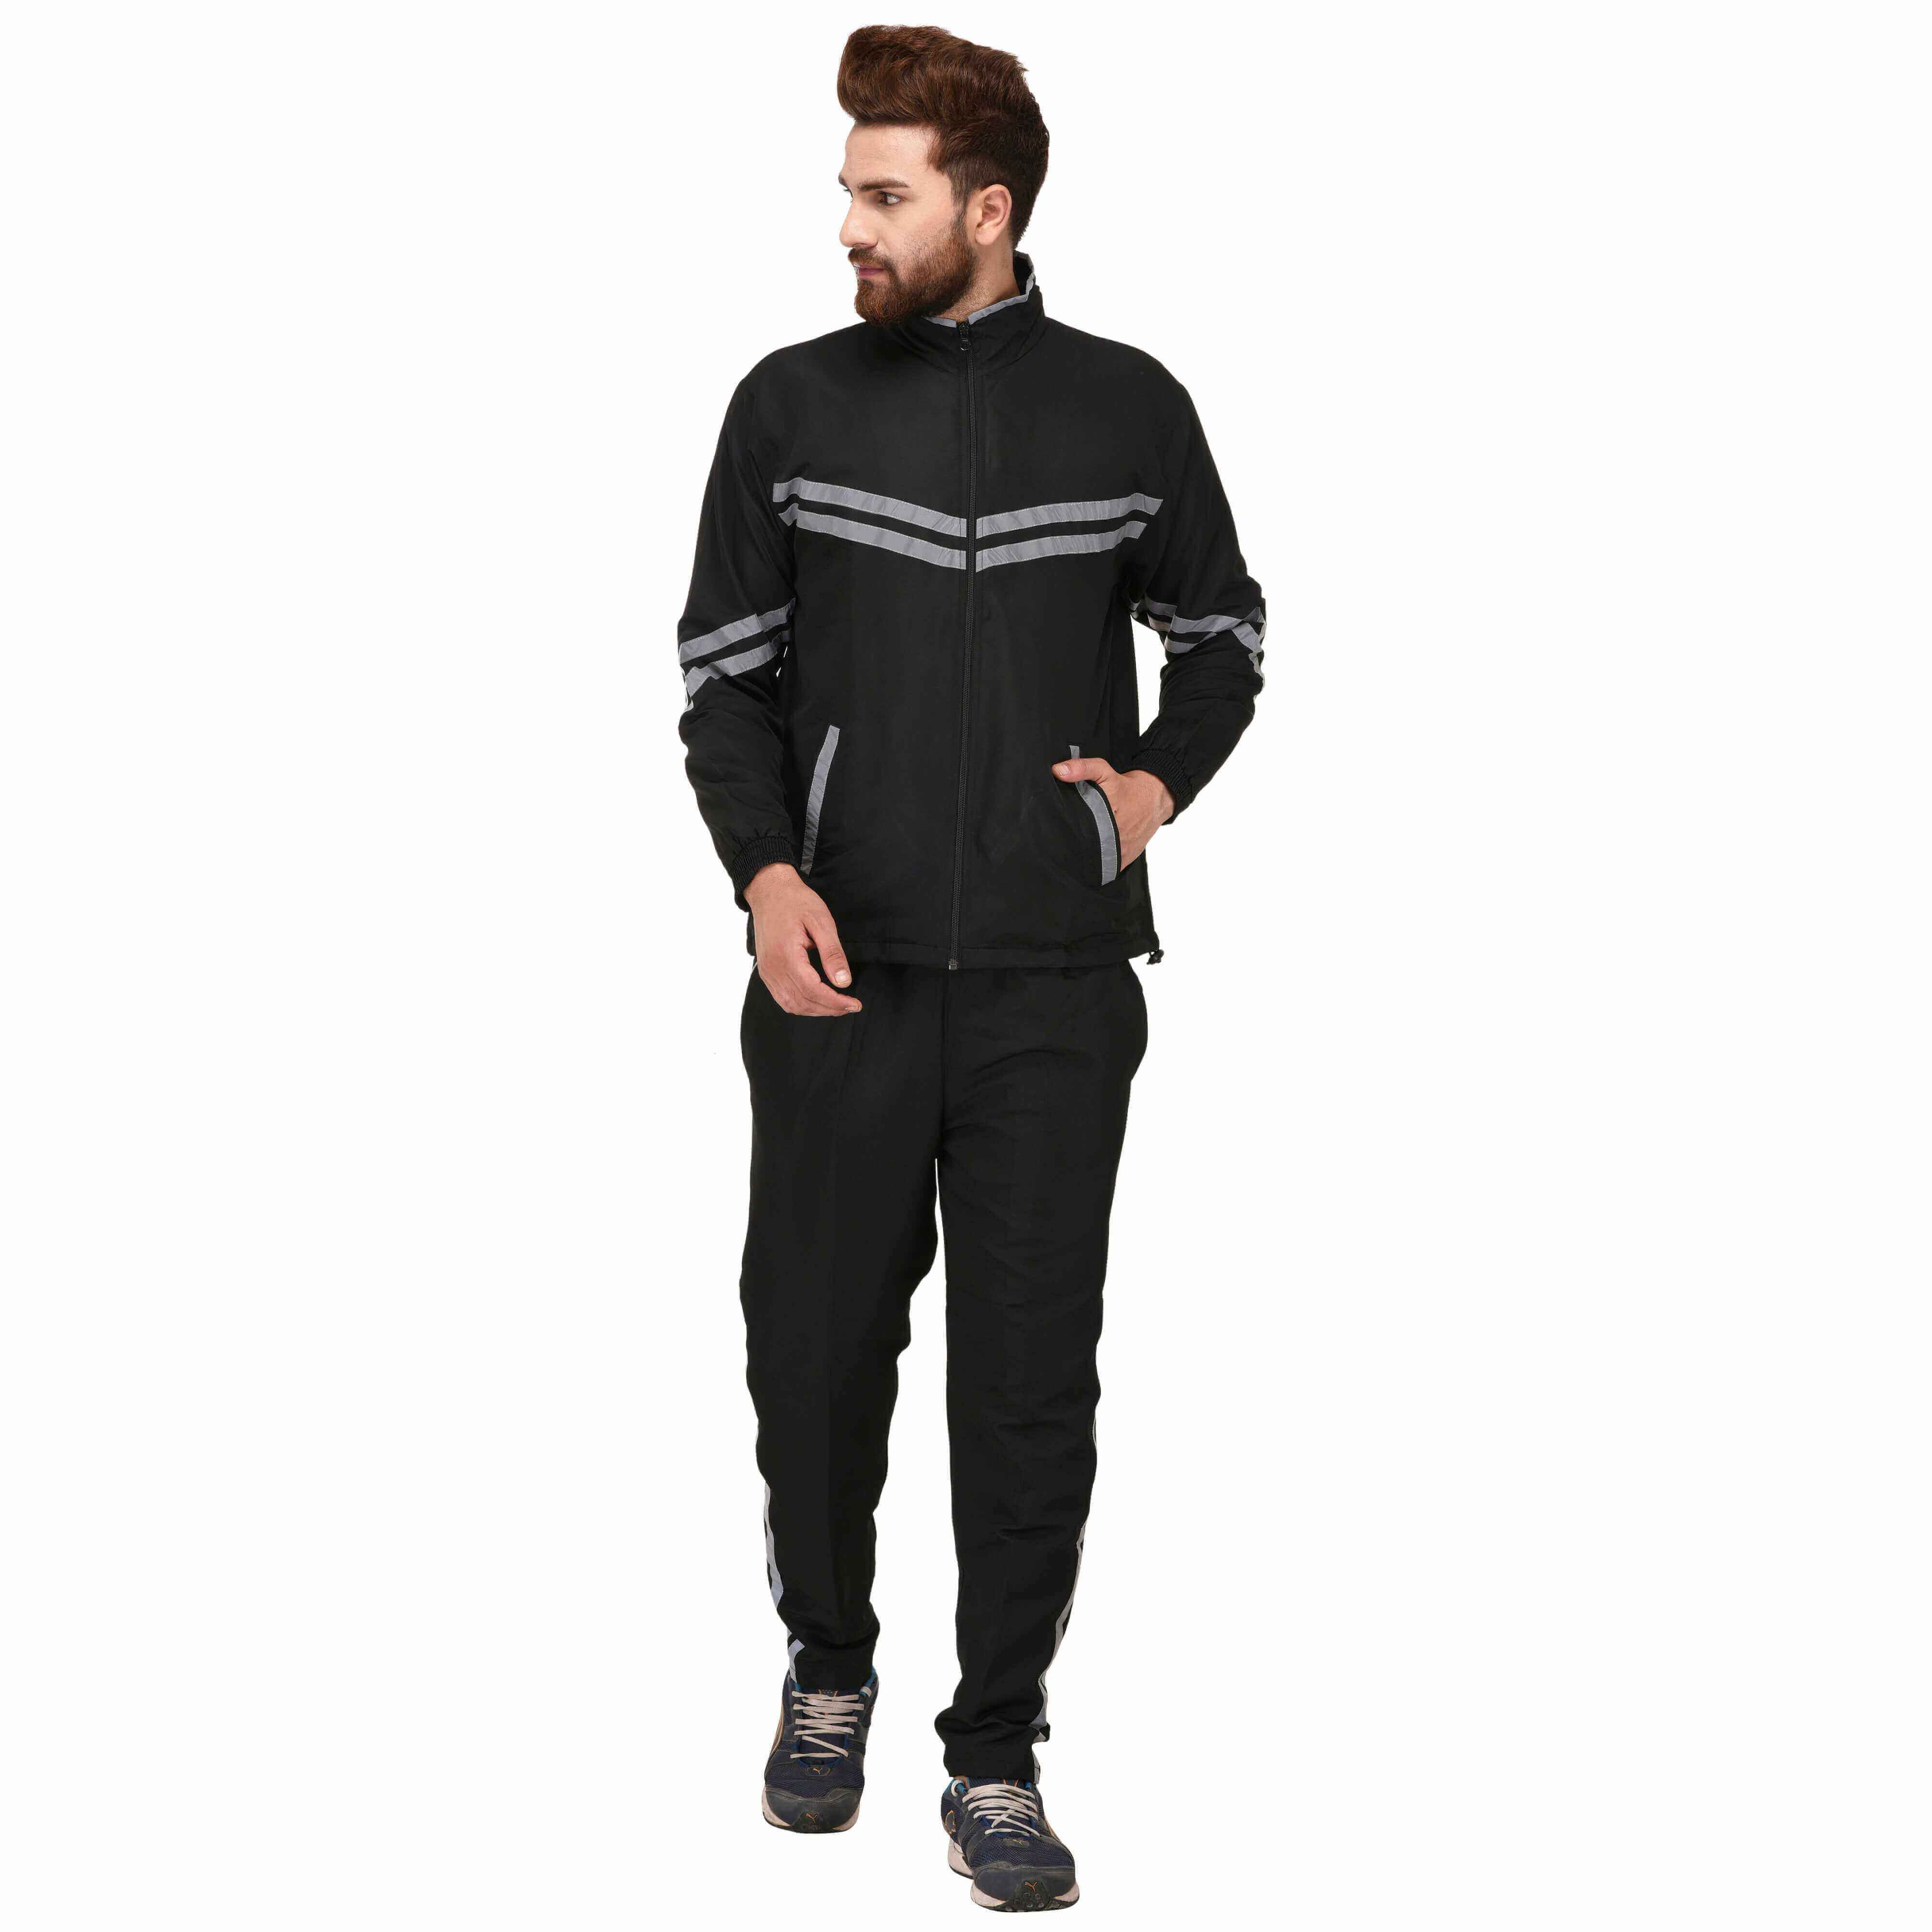 Grey Tracksuit Manufacturers in Thiruvananthapuram